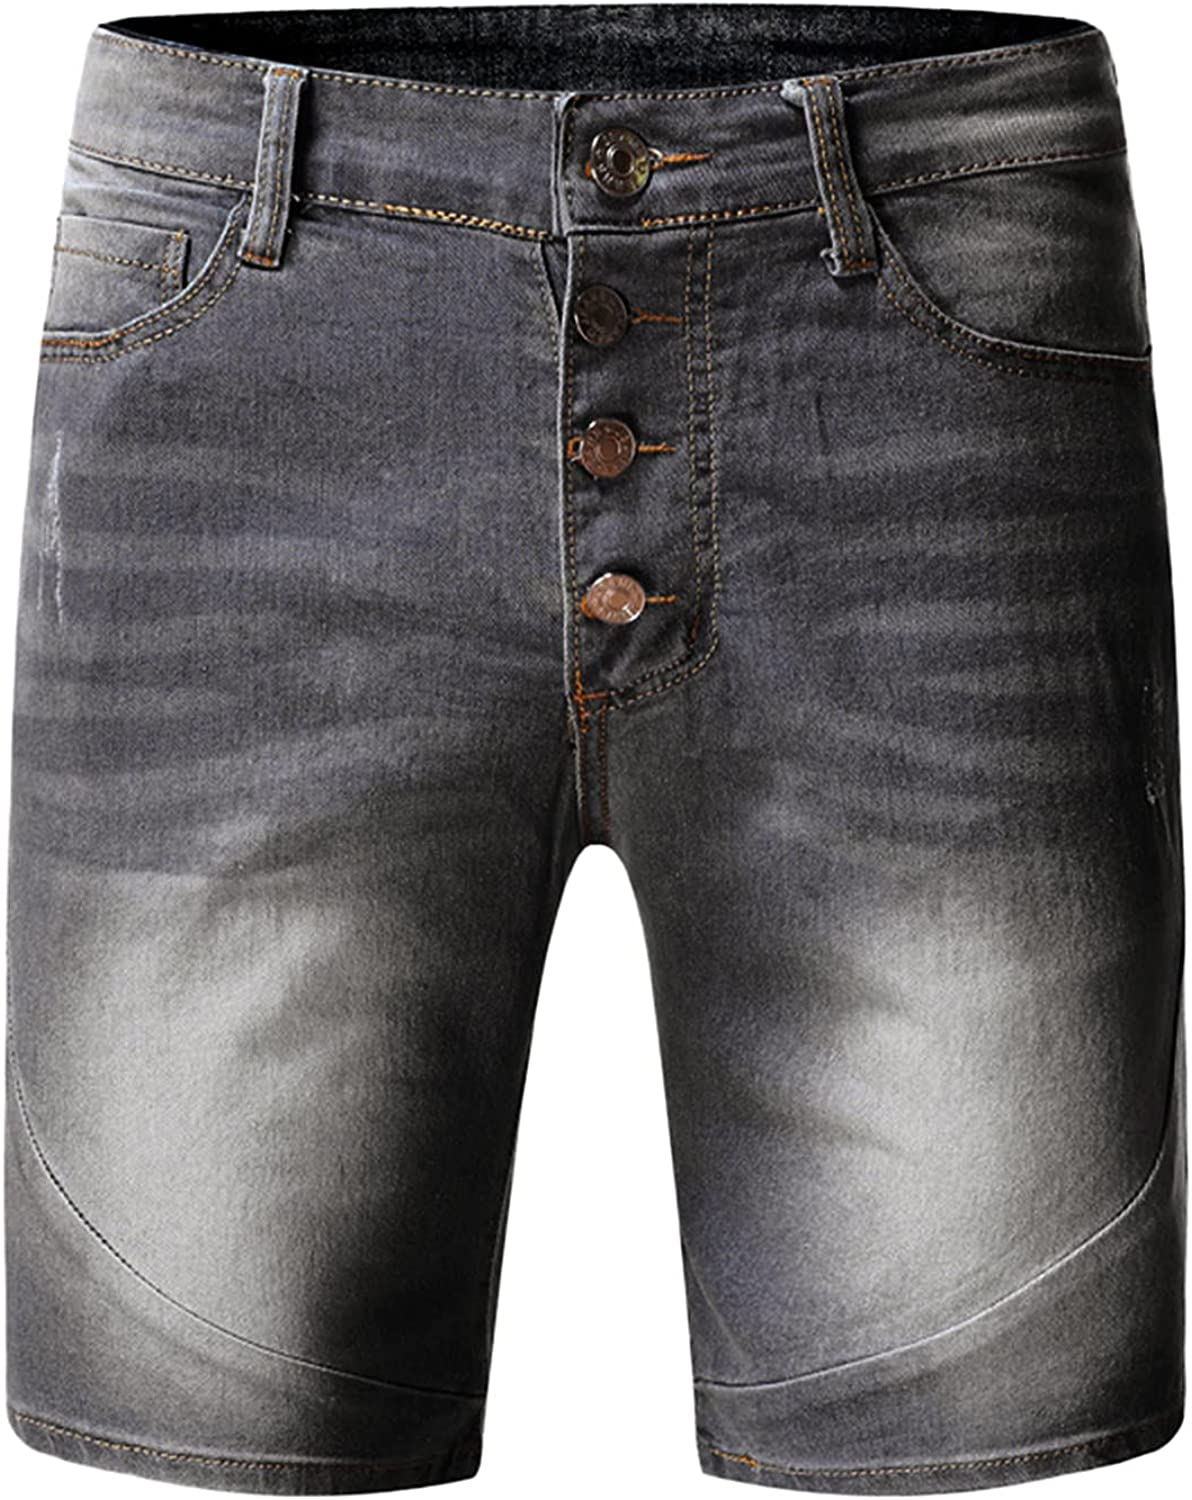 FUNEY Men's Classic Relaxed Fit Stretch Denim Shorts Fashion Casual Retro High Street Short Pants Jeans Modern Stylish